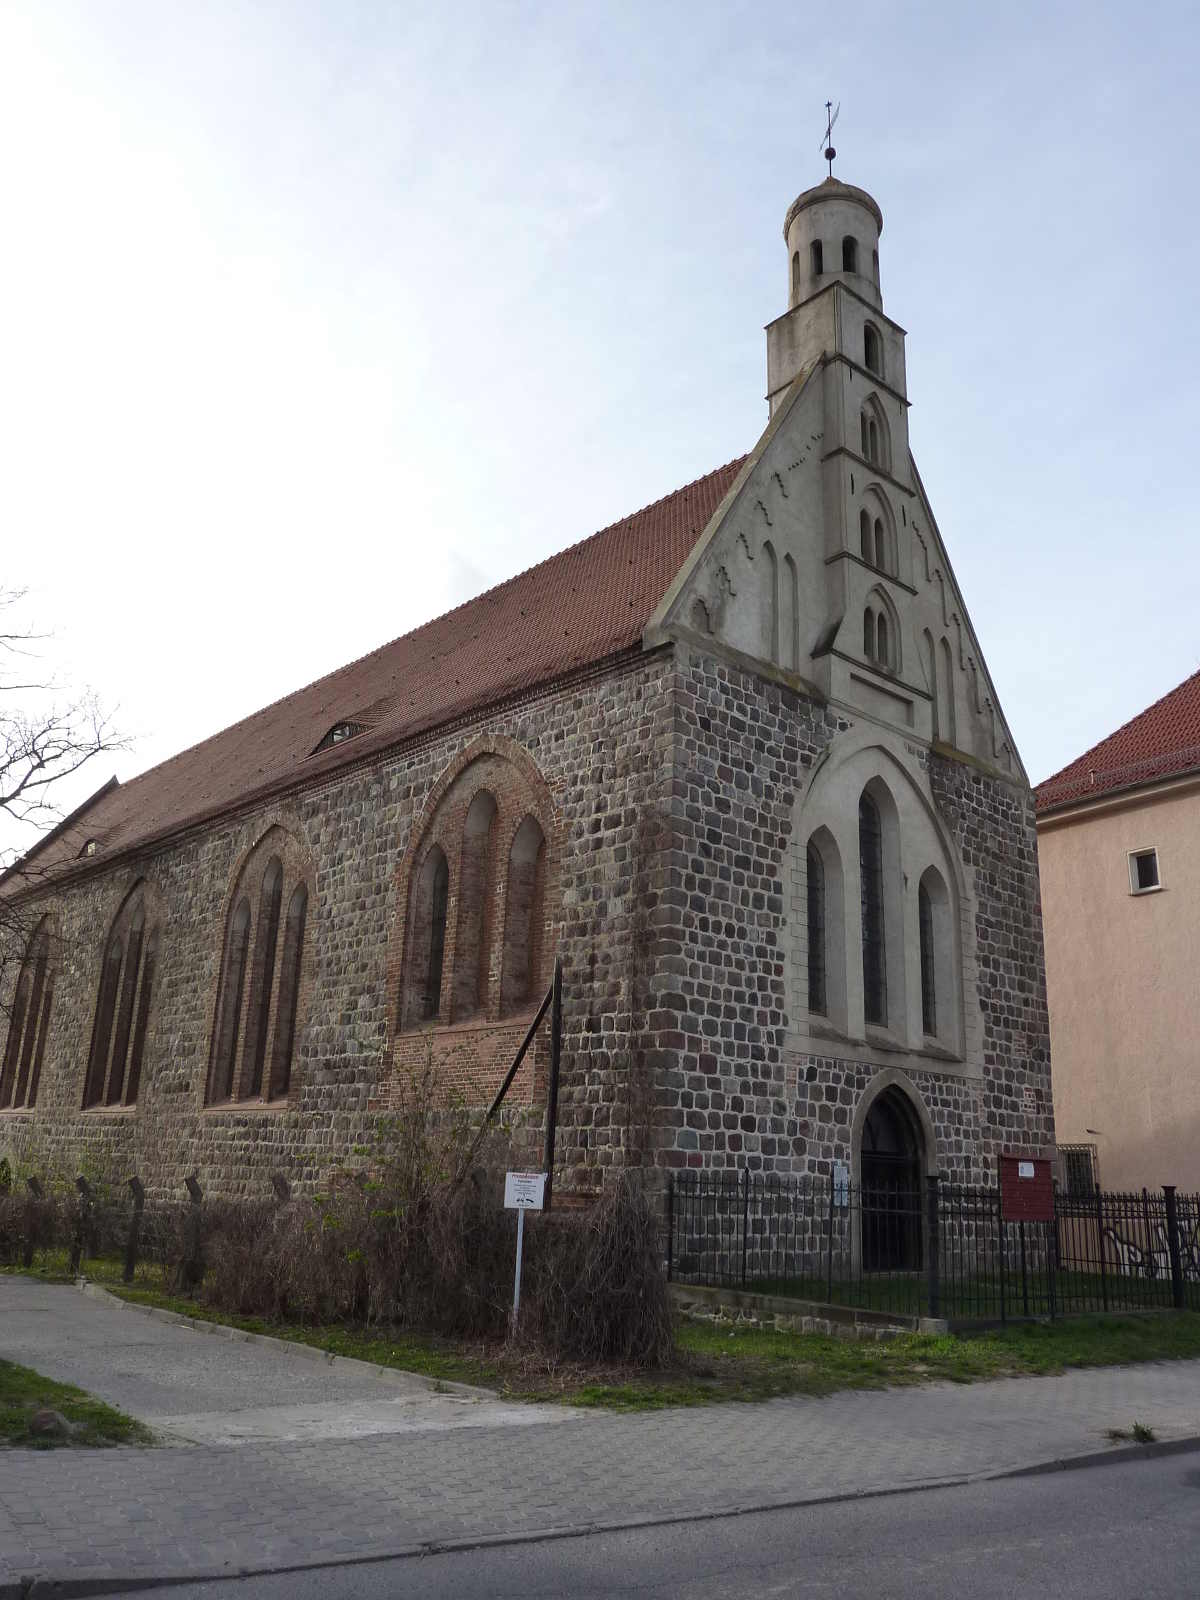 Monastery church of the Franciscans, Prenzlau